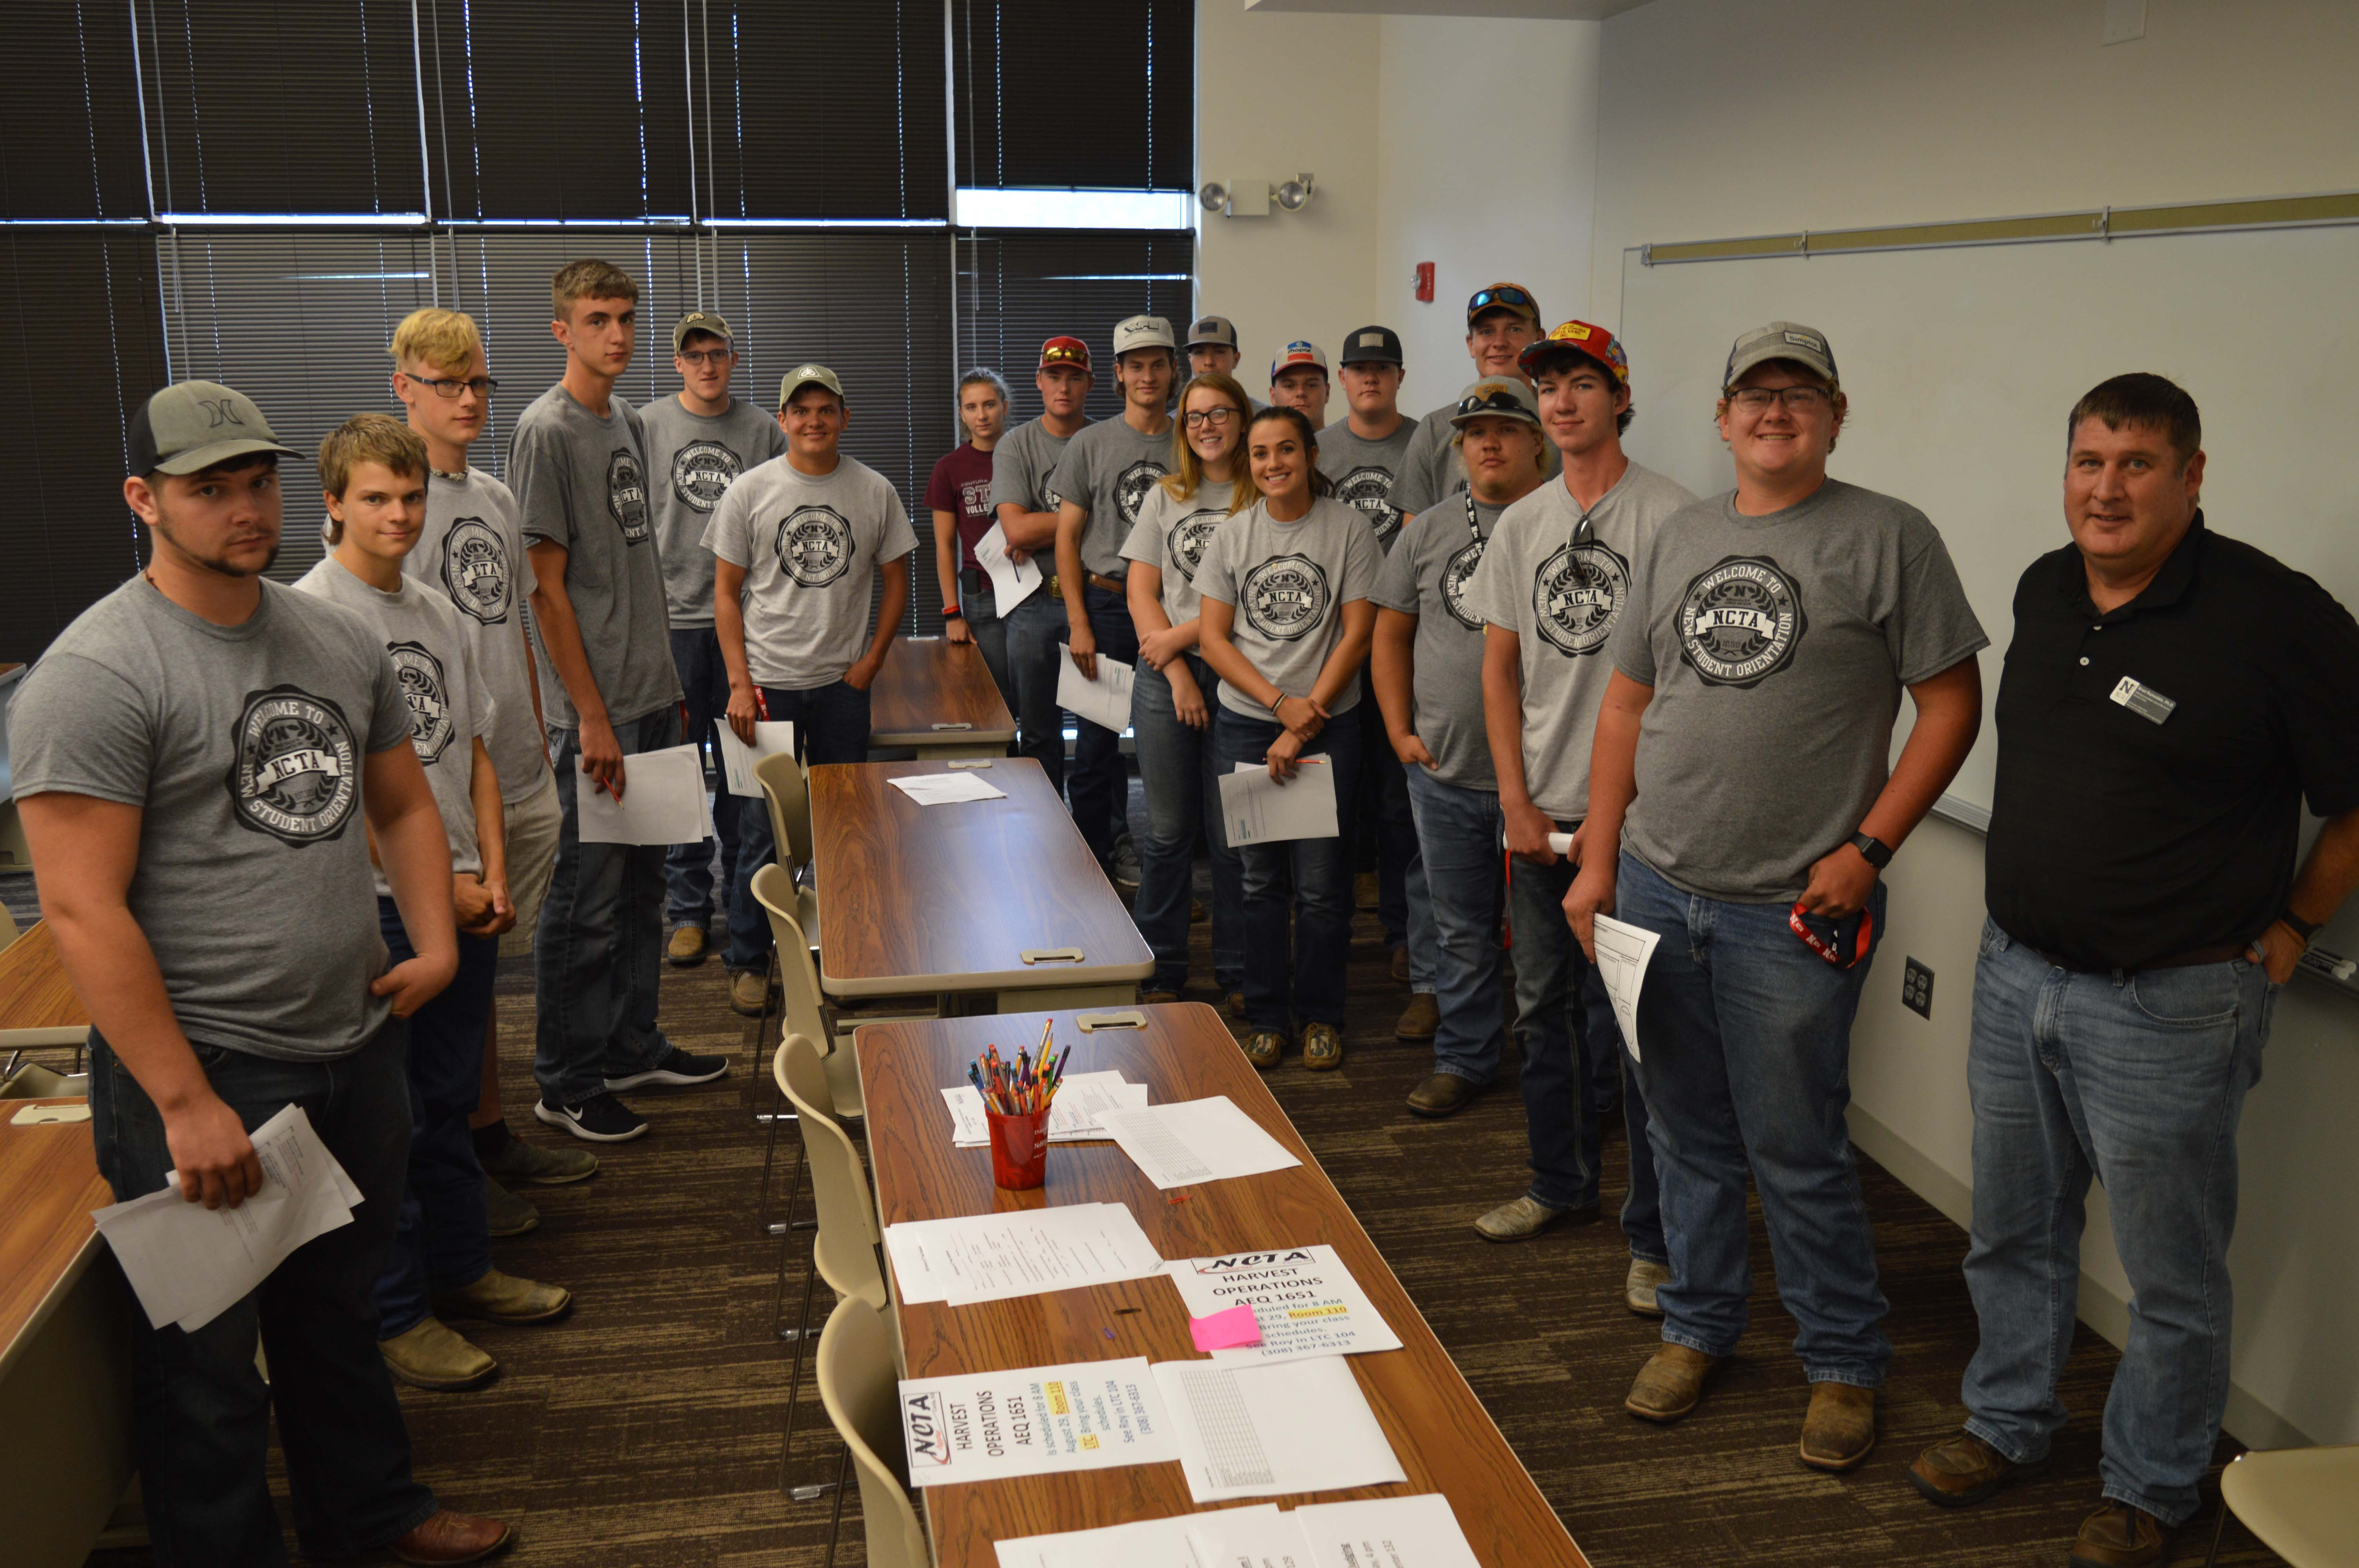 NCTA freshmen majoring in Diversified Agriculture (agronomy and livestock emphasis) gathered with Professor Brad Ramsdale, front right, at the start of fall semester. (Crawford / NCTA News)